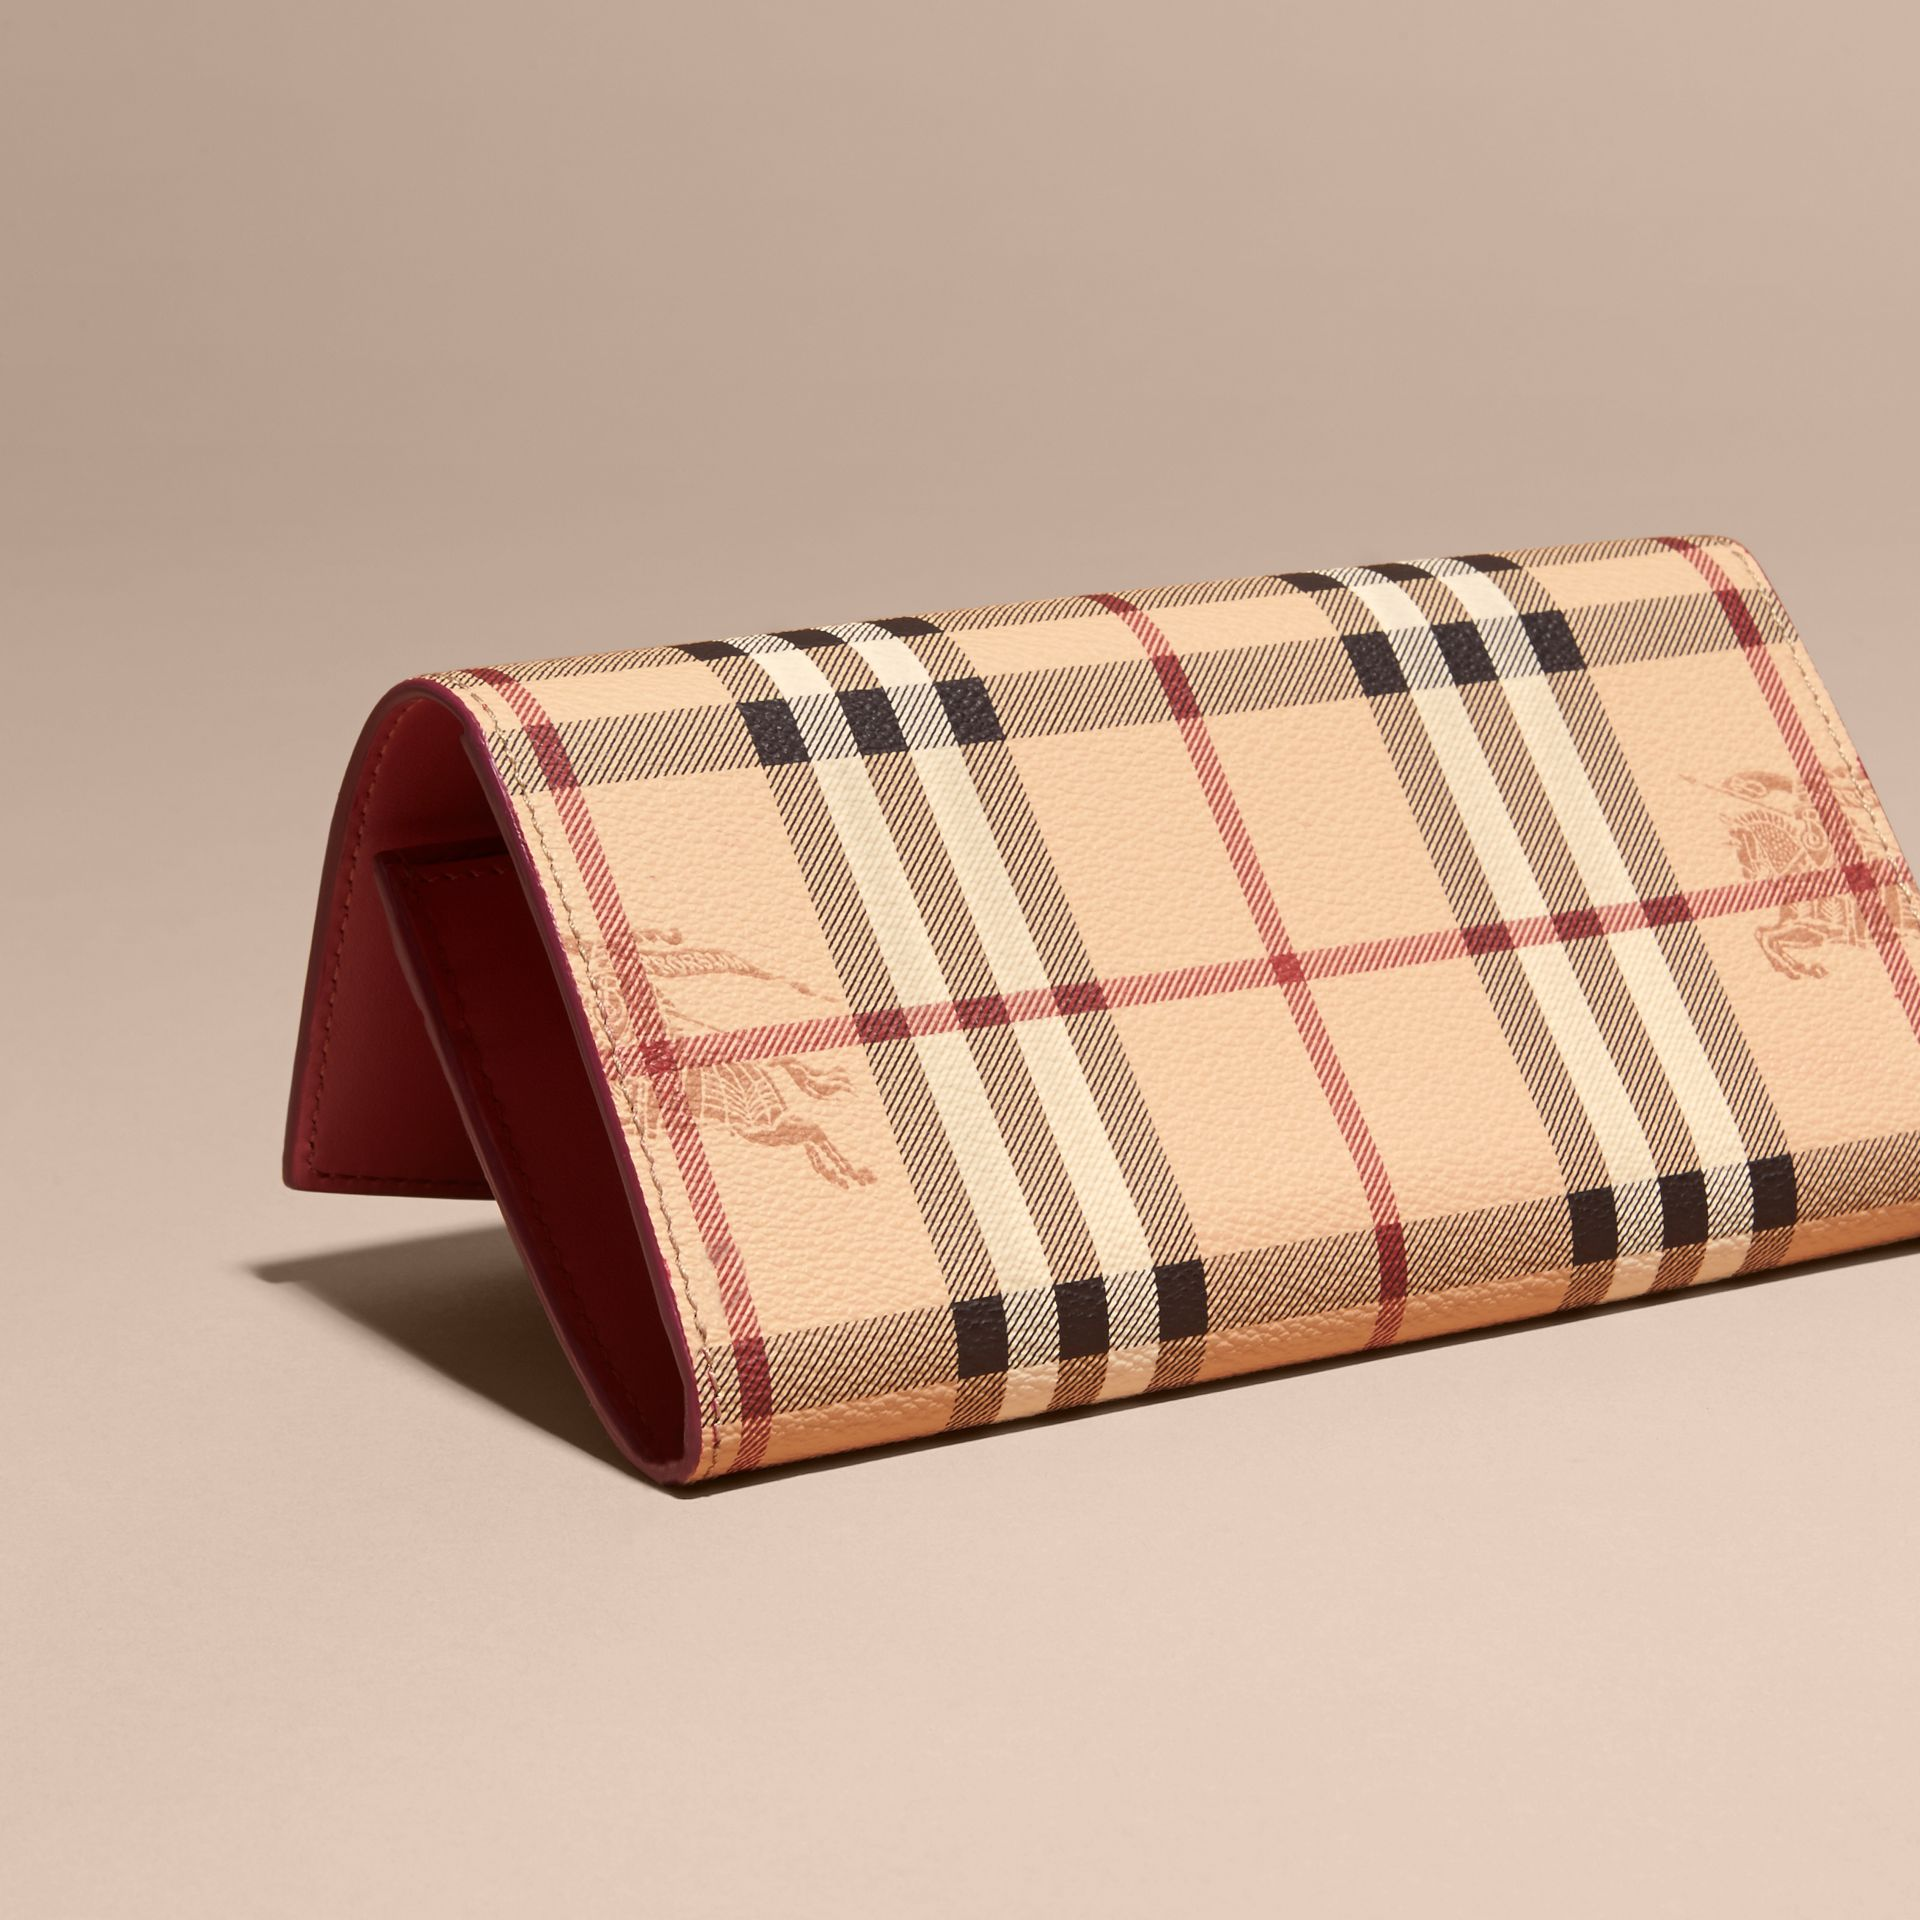 Haymarket Check and Leather Continental Wallet in Plum Pink - Women | Burberry - gallery image 4